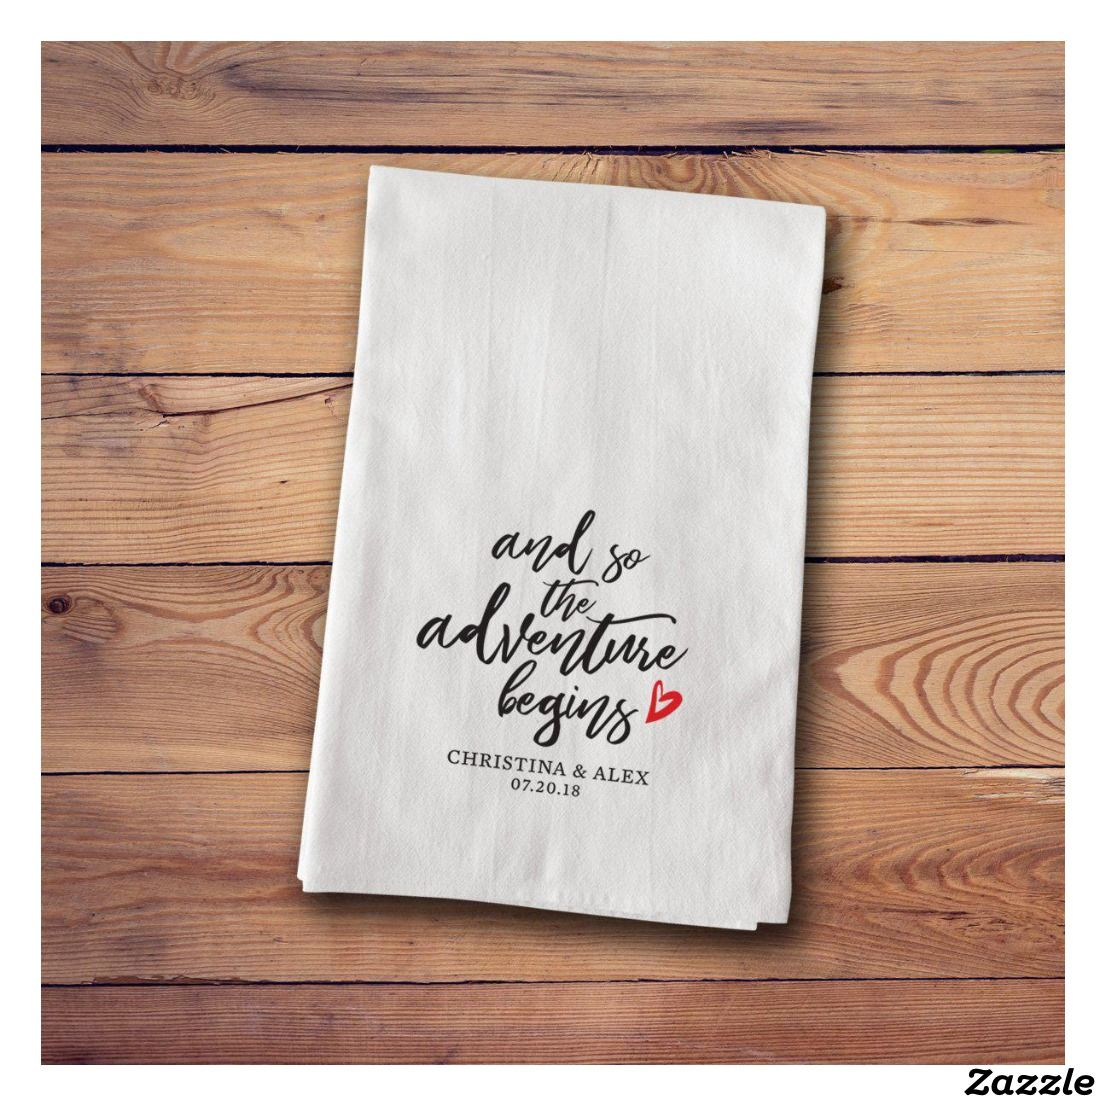 Embroidered Towels For Wedding Gift: Adventure Begins Embroidered Cotton Tea Towel